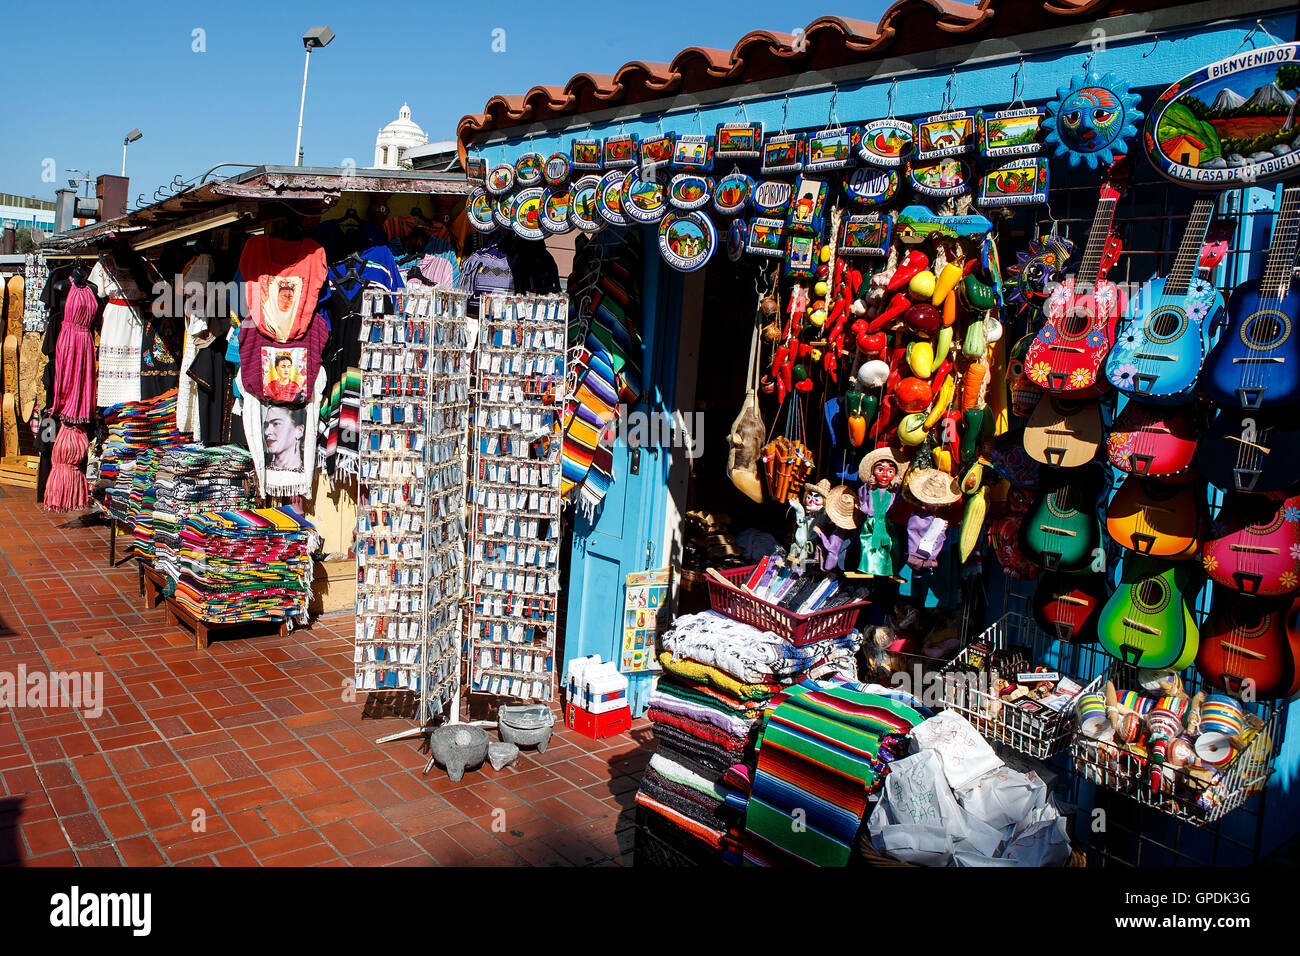 Souvenirs for sale in the market on Olivera Street, Los Angeles, California, United States of America - Stock Image